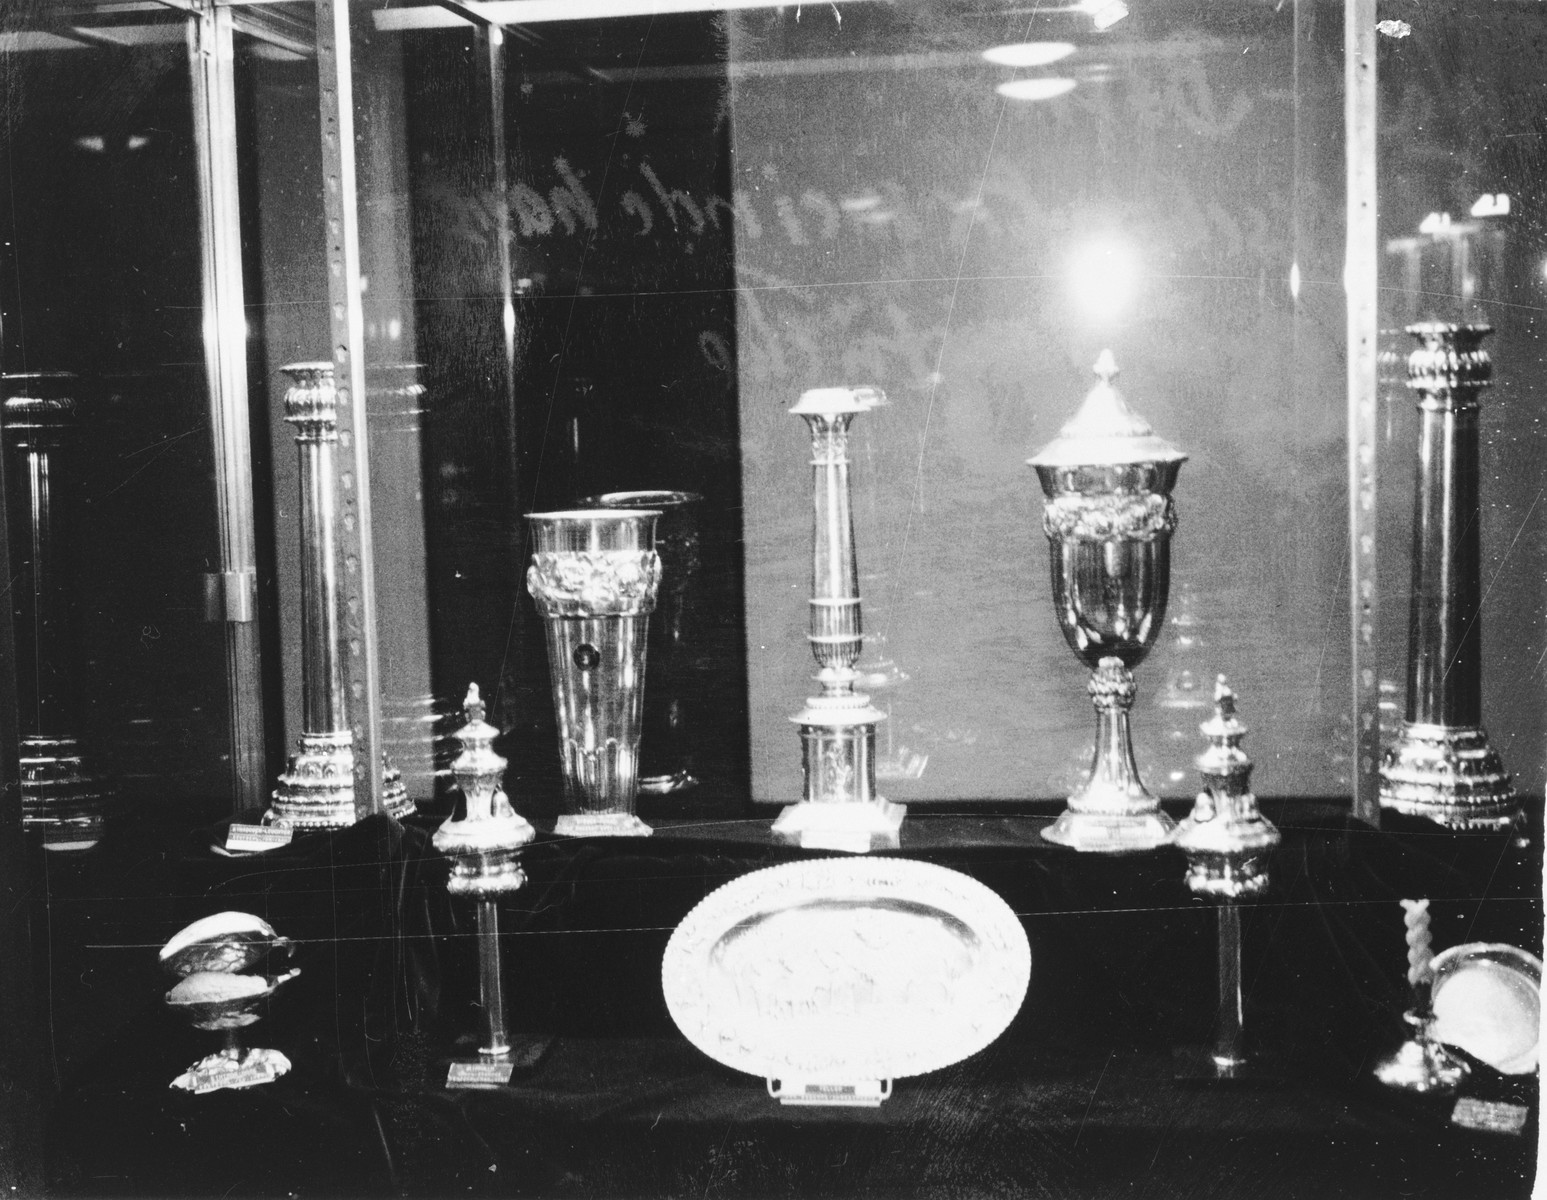 Display of synagogue silver from Berlin that was retrieved from an underground hiding place after World War II.